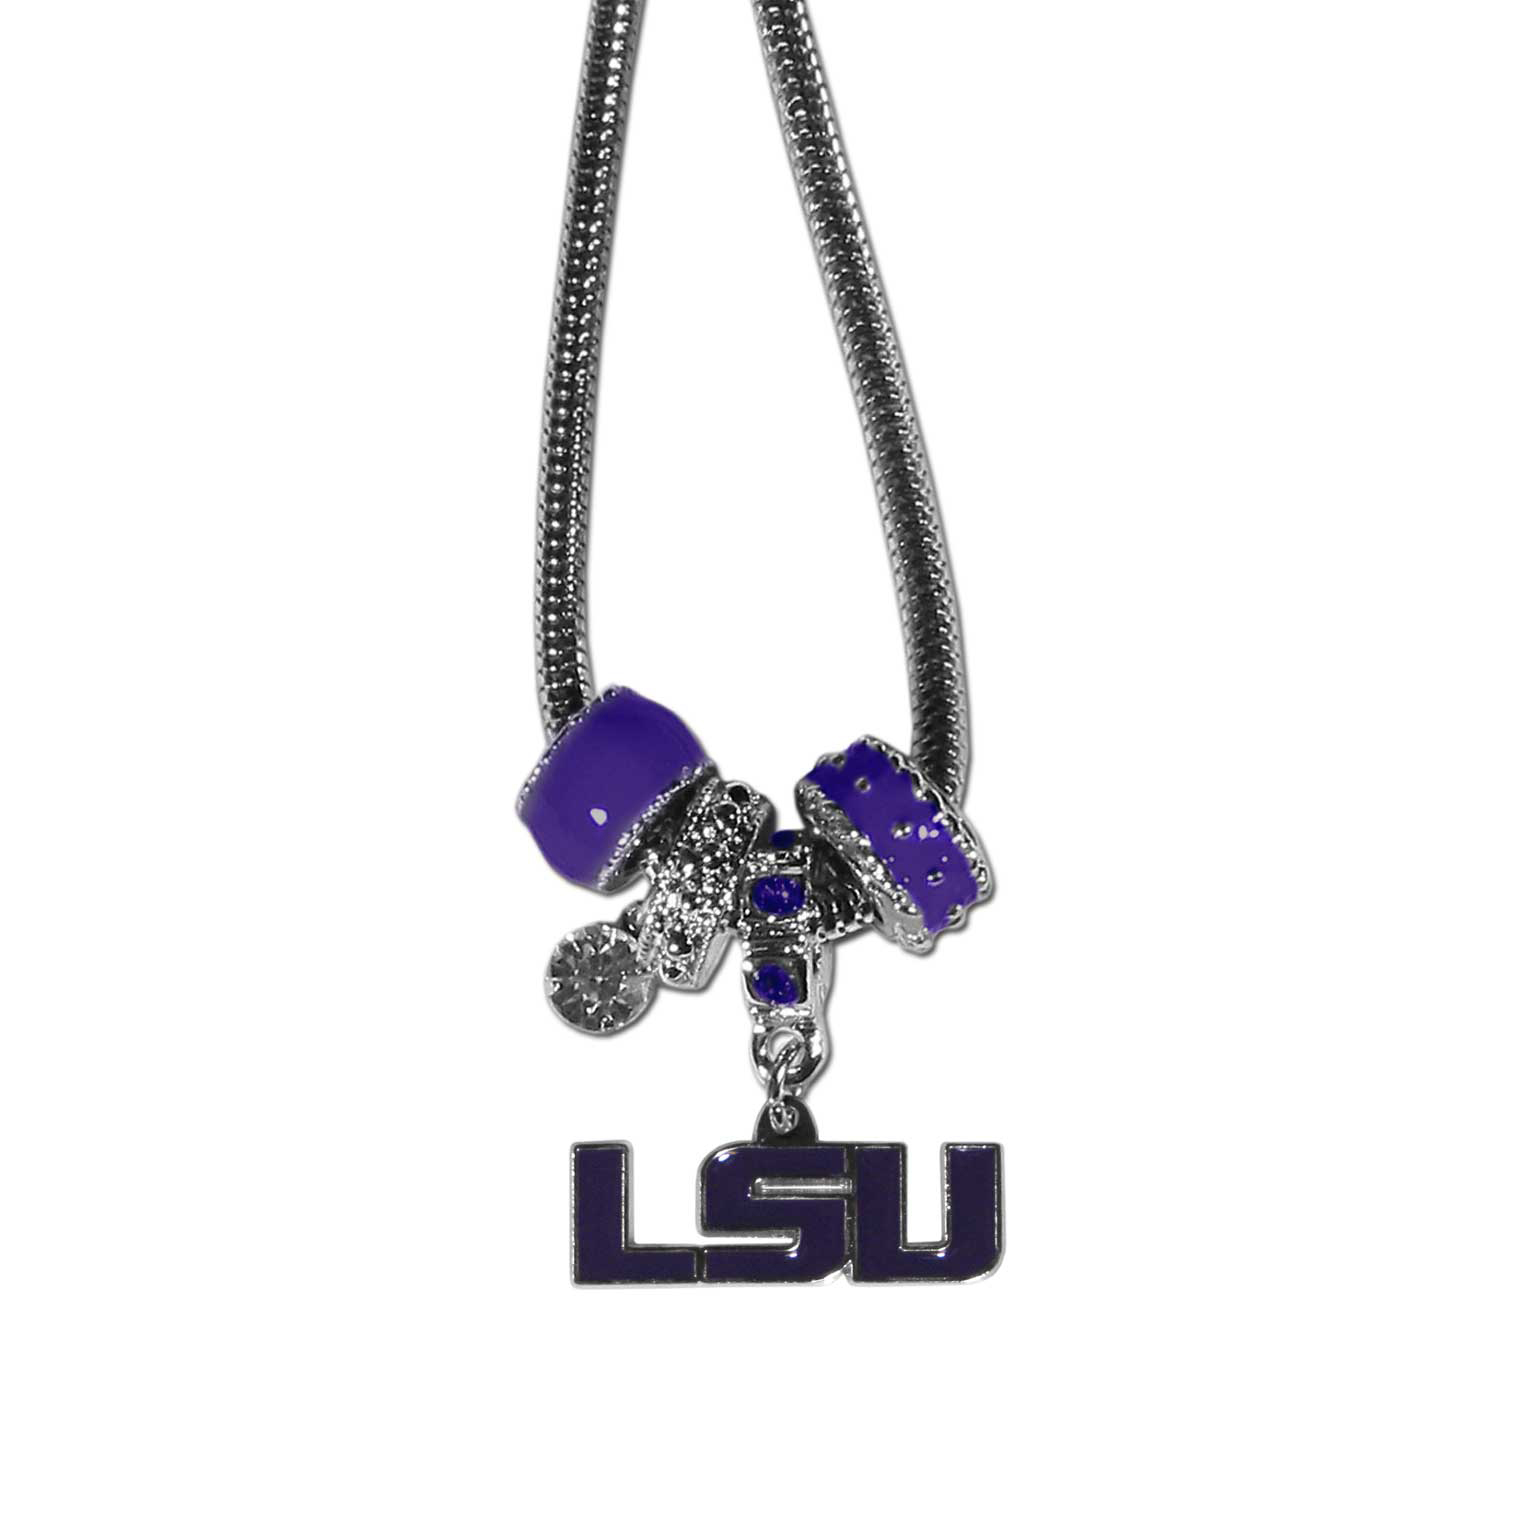 LSU Tigers Euro Bead Necklace - We have combined the wildly popular Euro style beads with your favorite team to create our LSU Tigers bead necklace. The 18 inch snake chain features 4 Euro beads with enameled team colors and rhinestone accents with a high polish, nickel free charm and rhinestone charm. Perfect way to show off your team pride.